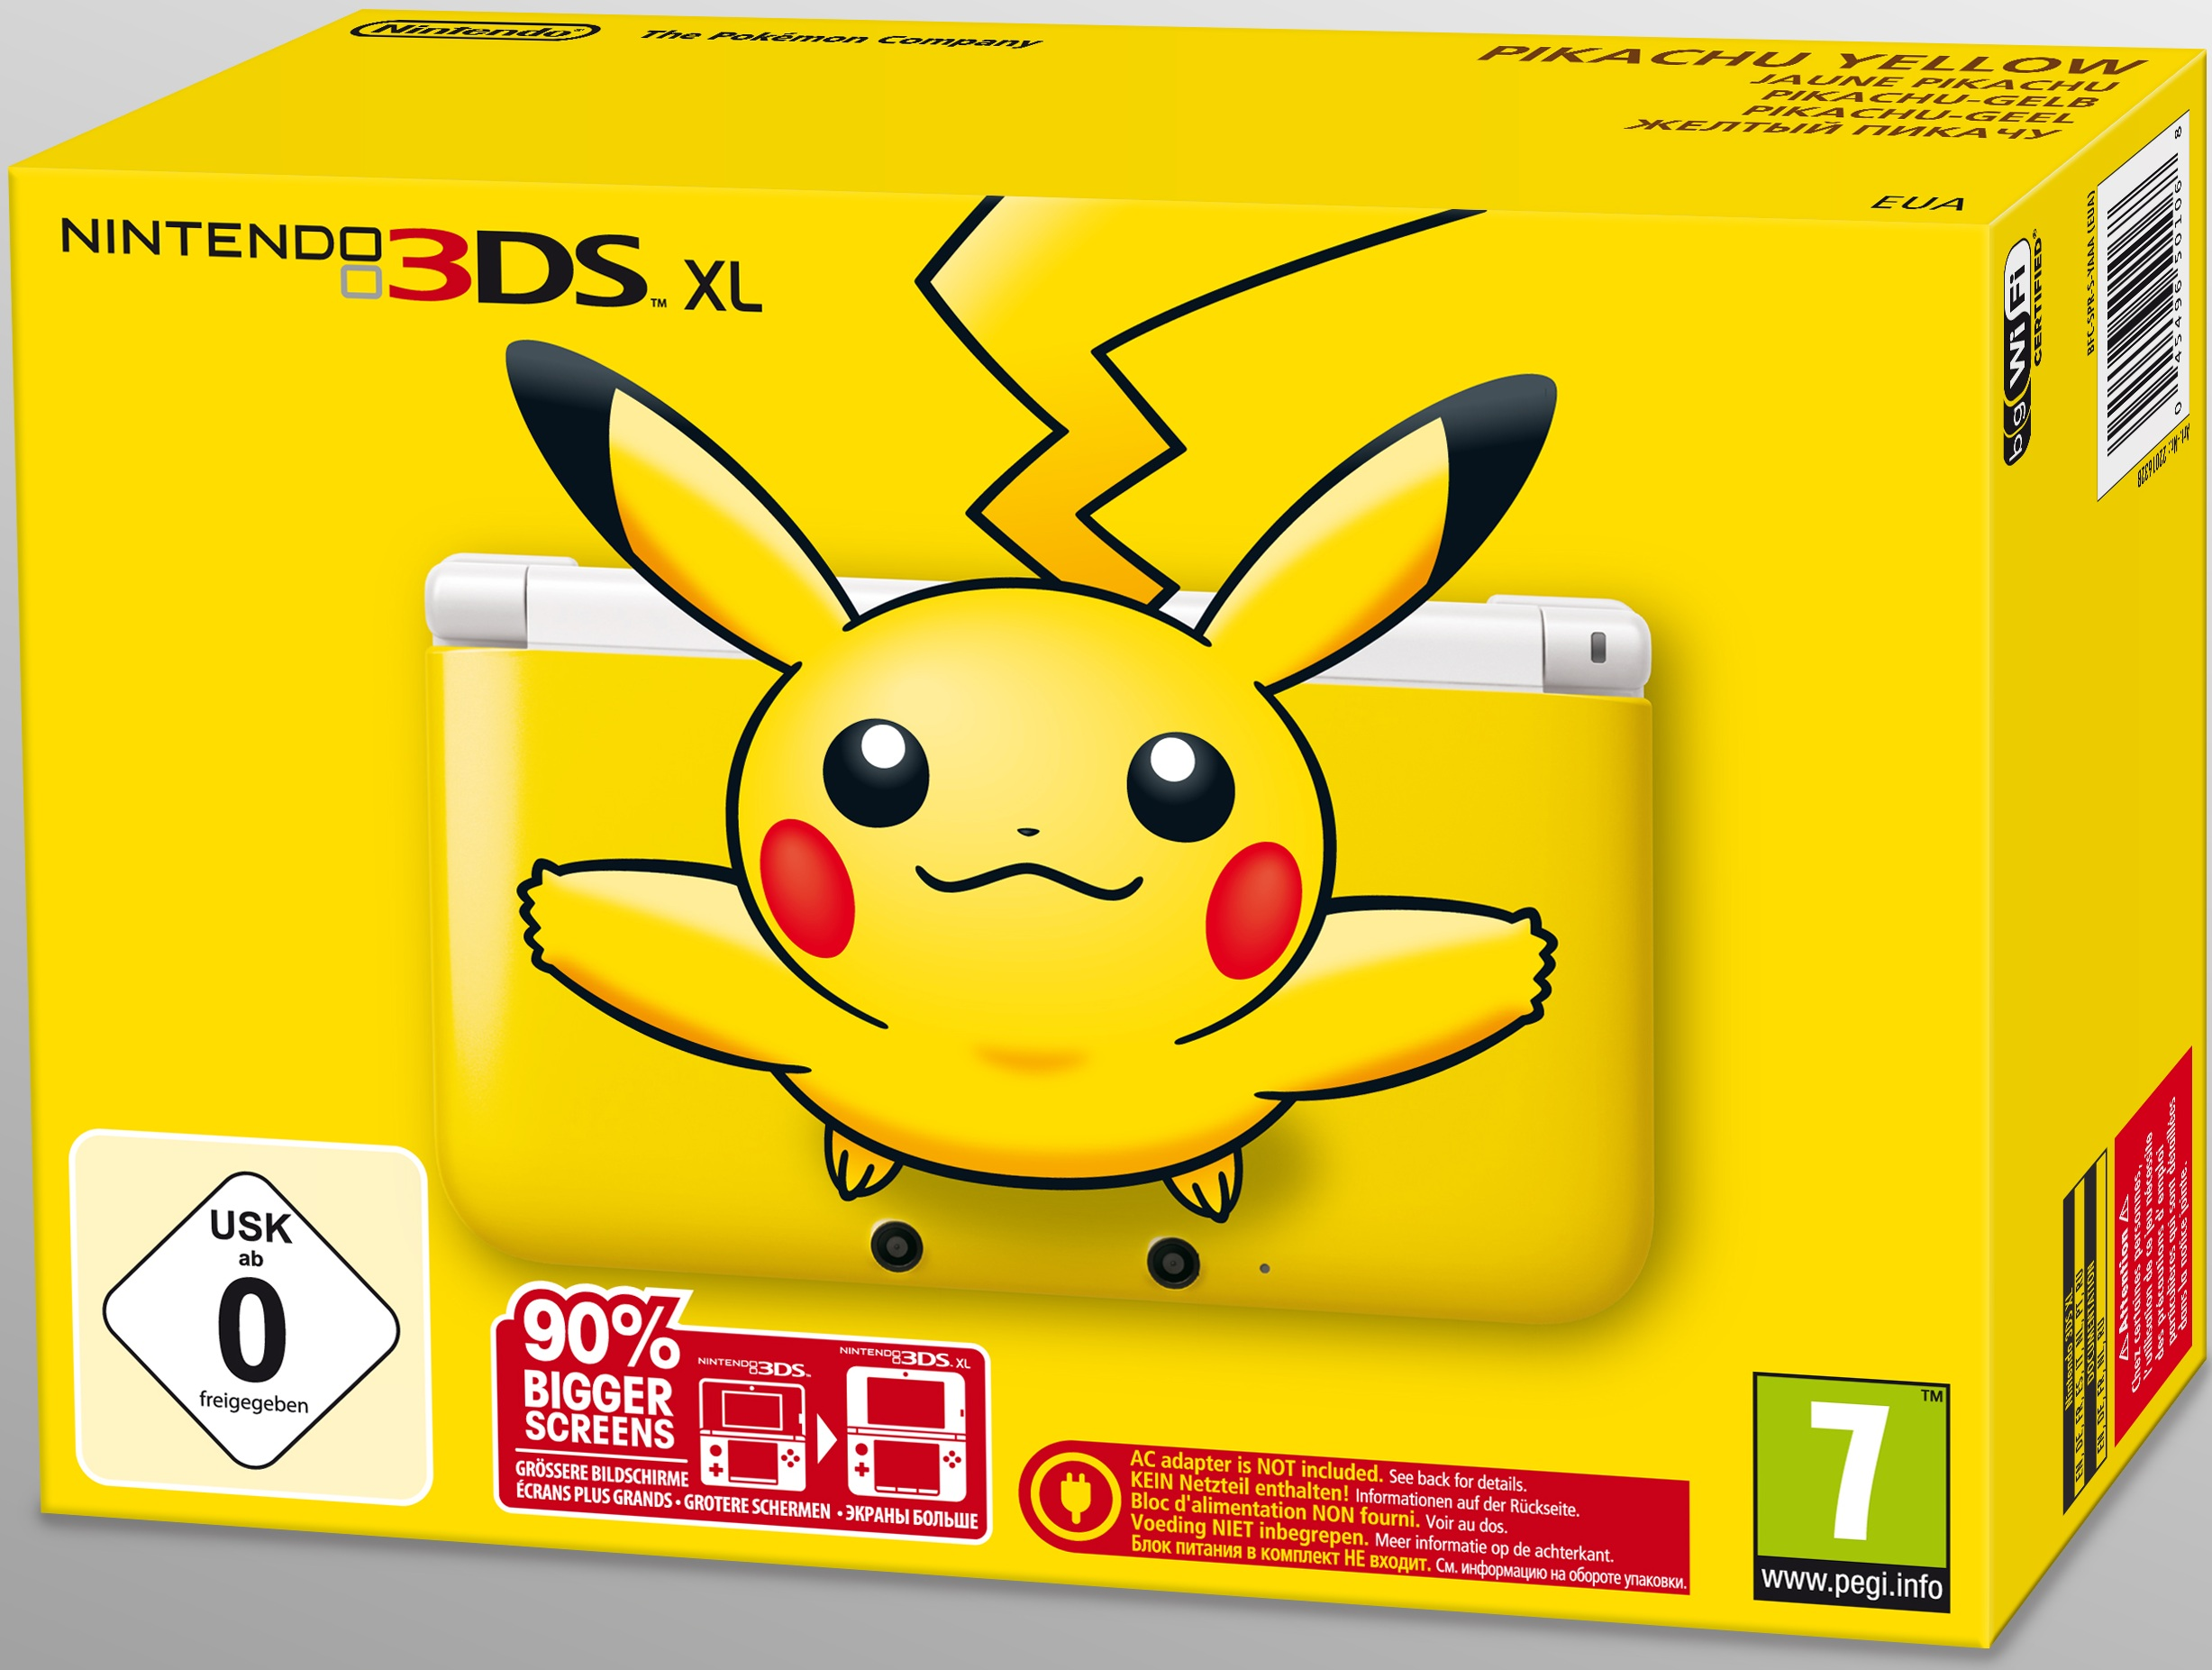 Legendary pok mon pikachu 3ds xl confirmed for north america for Housse 3ds pokemon